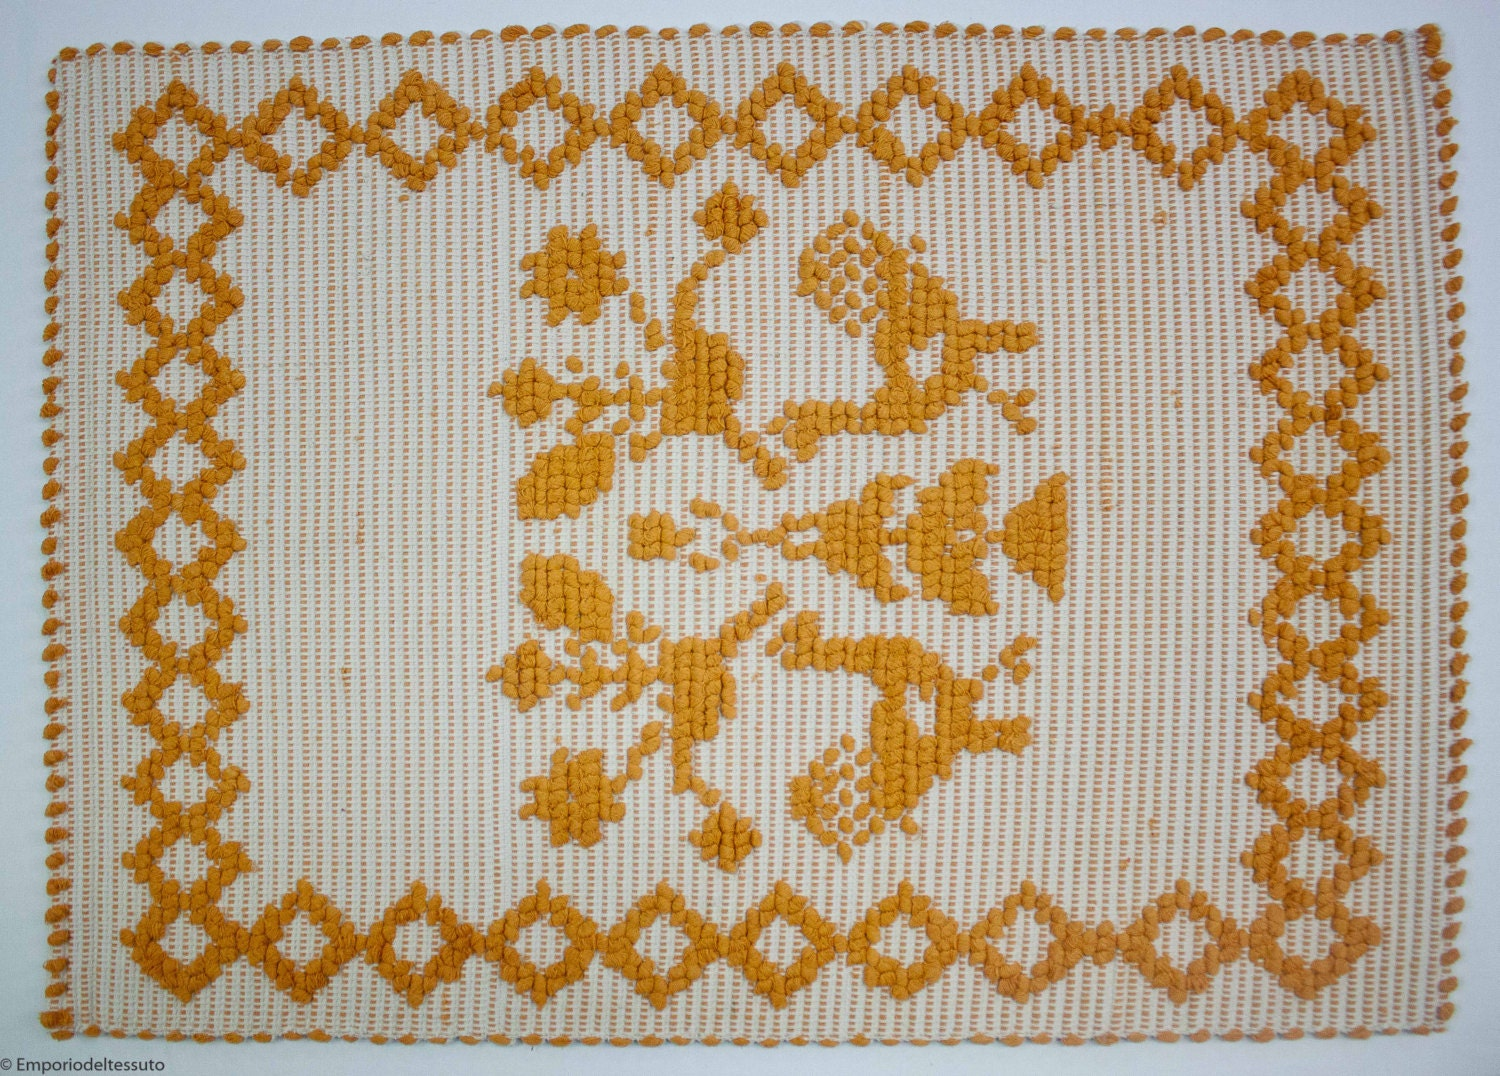 bath rug gallinelle small by emporiodeltessuto on etsy